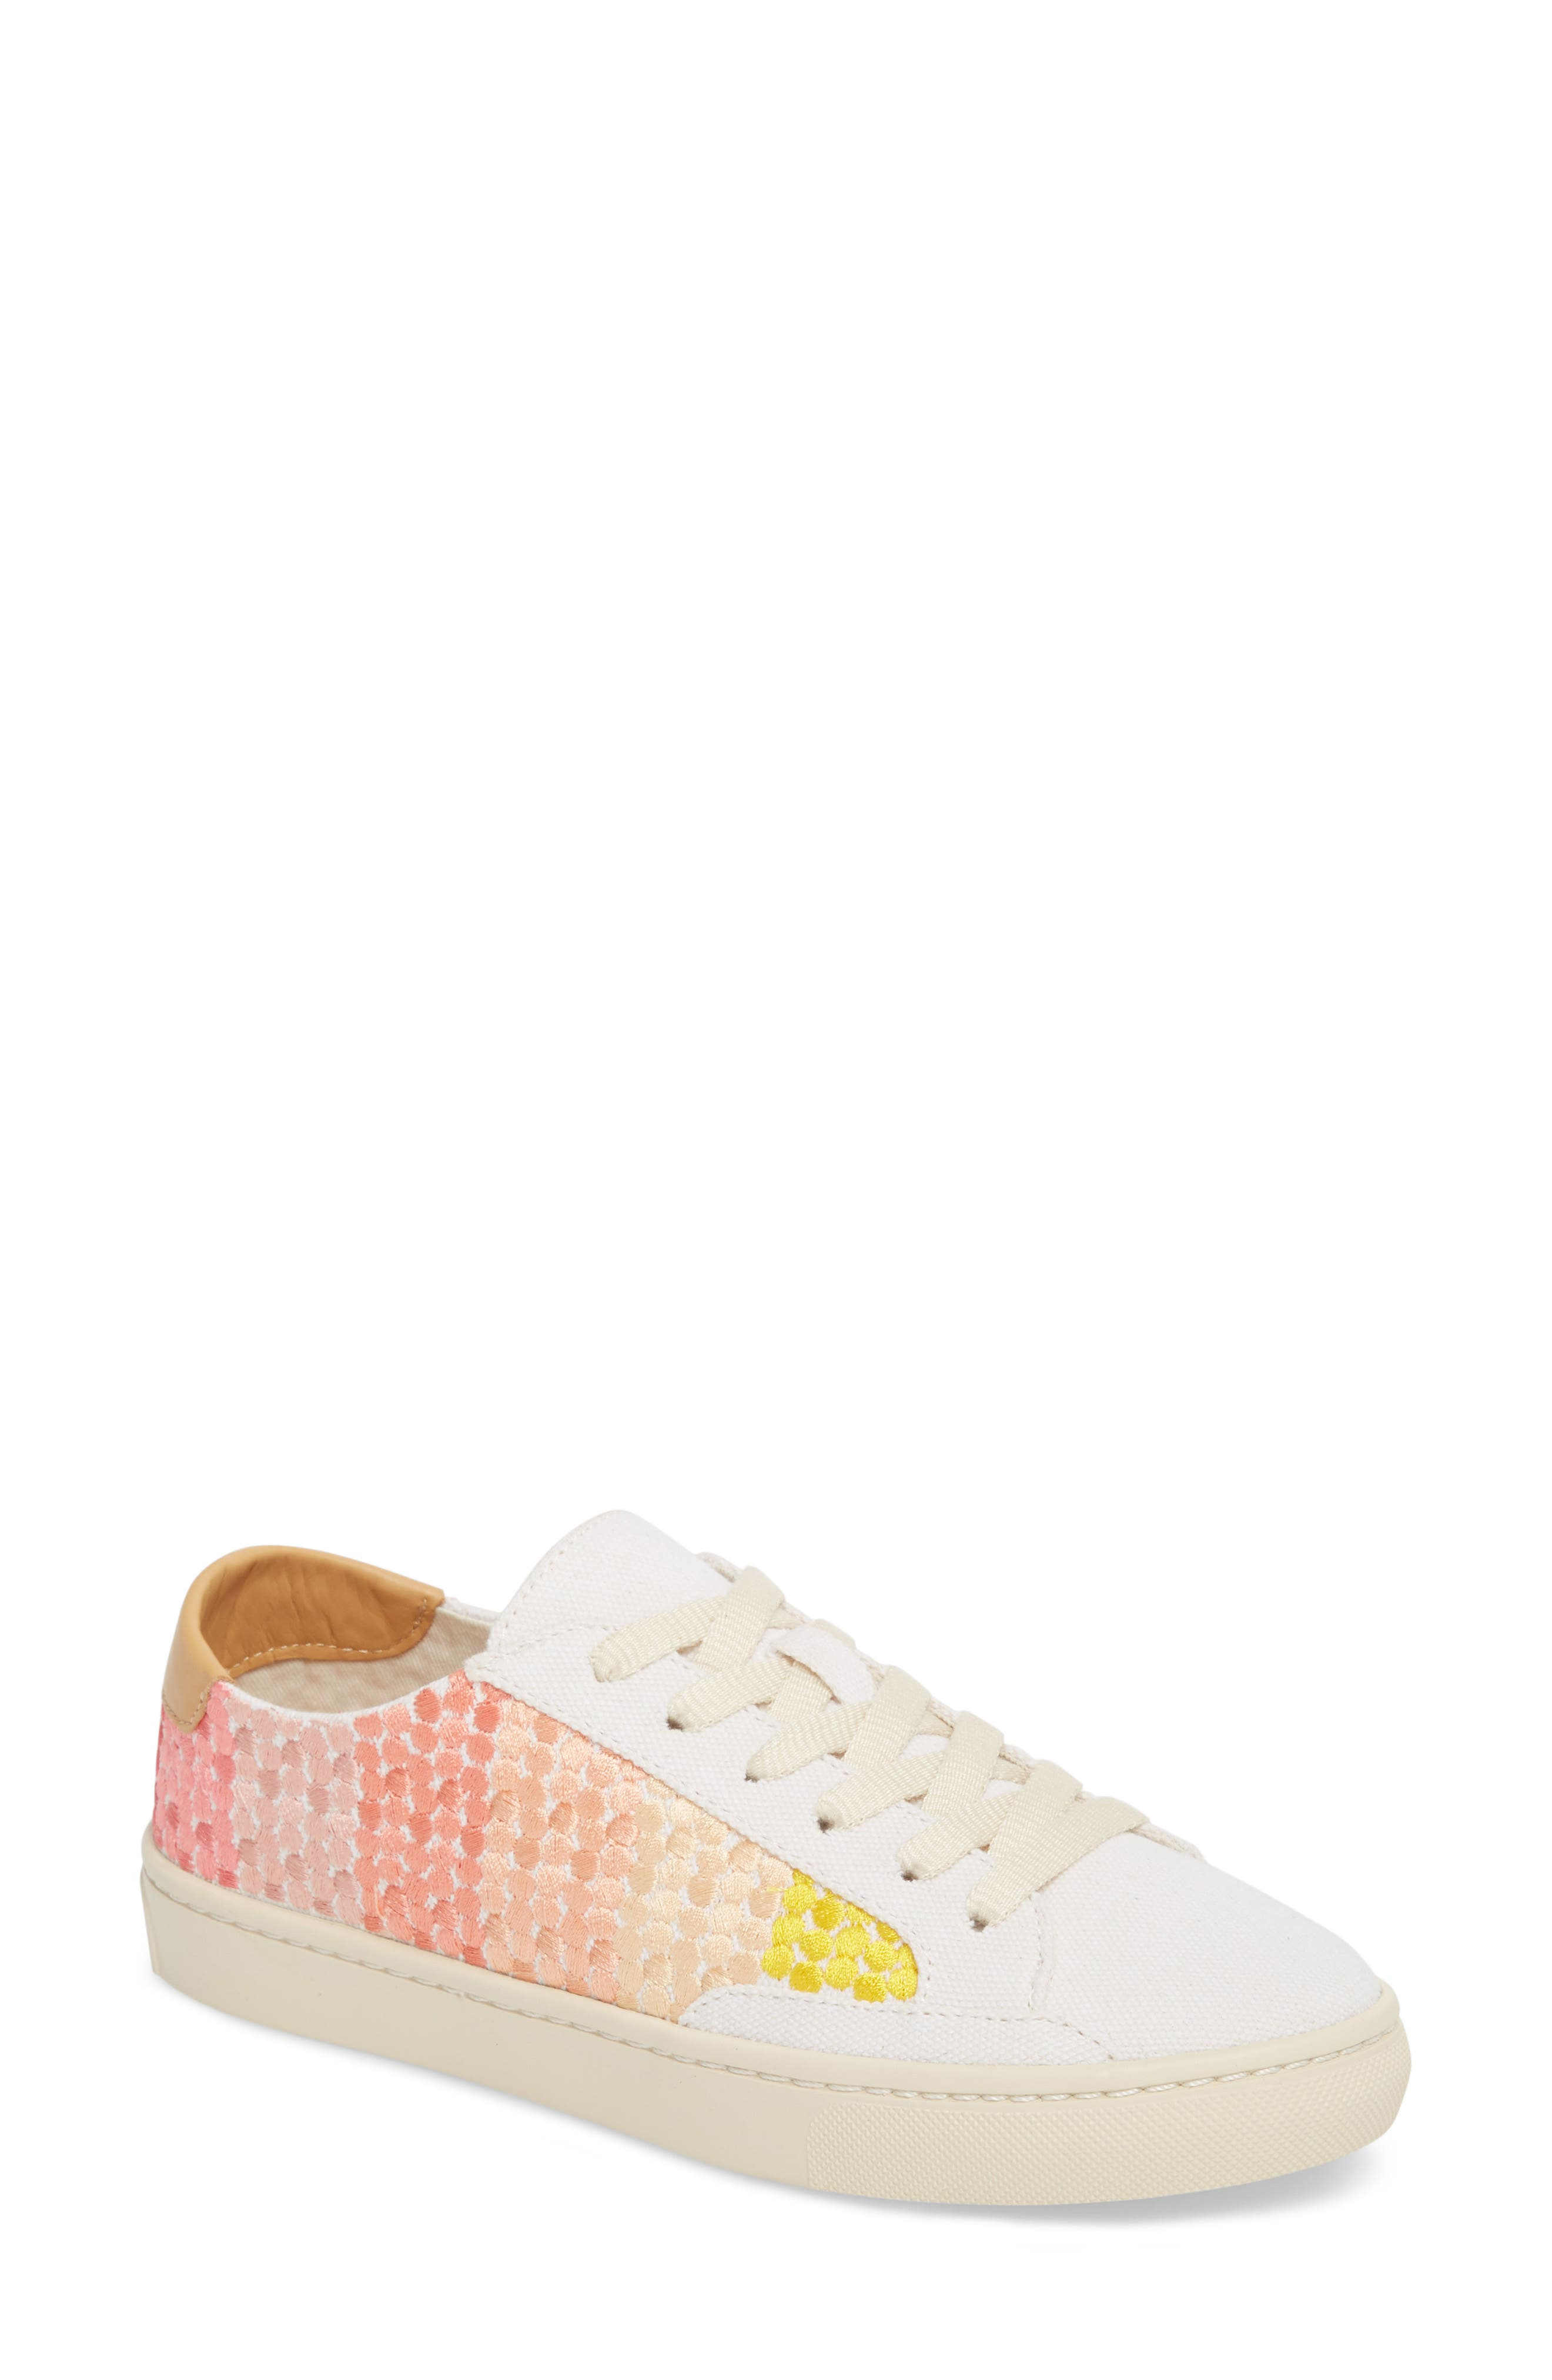 Embroidered Ombre Sneaker,                         Main,                         color, Sunshine